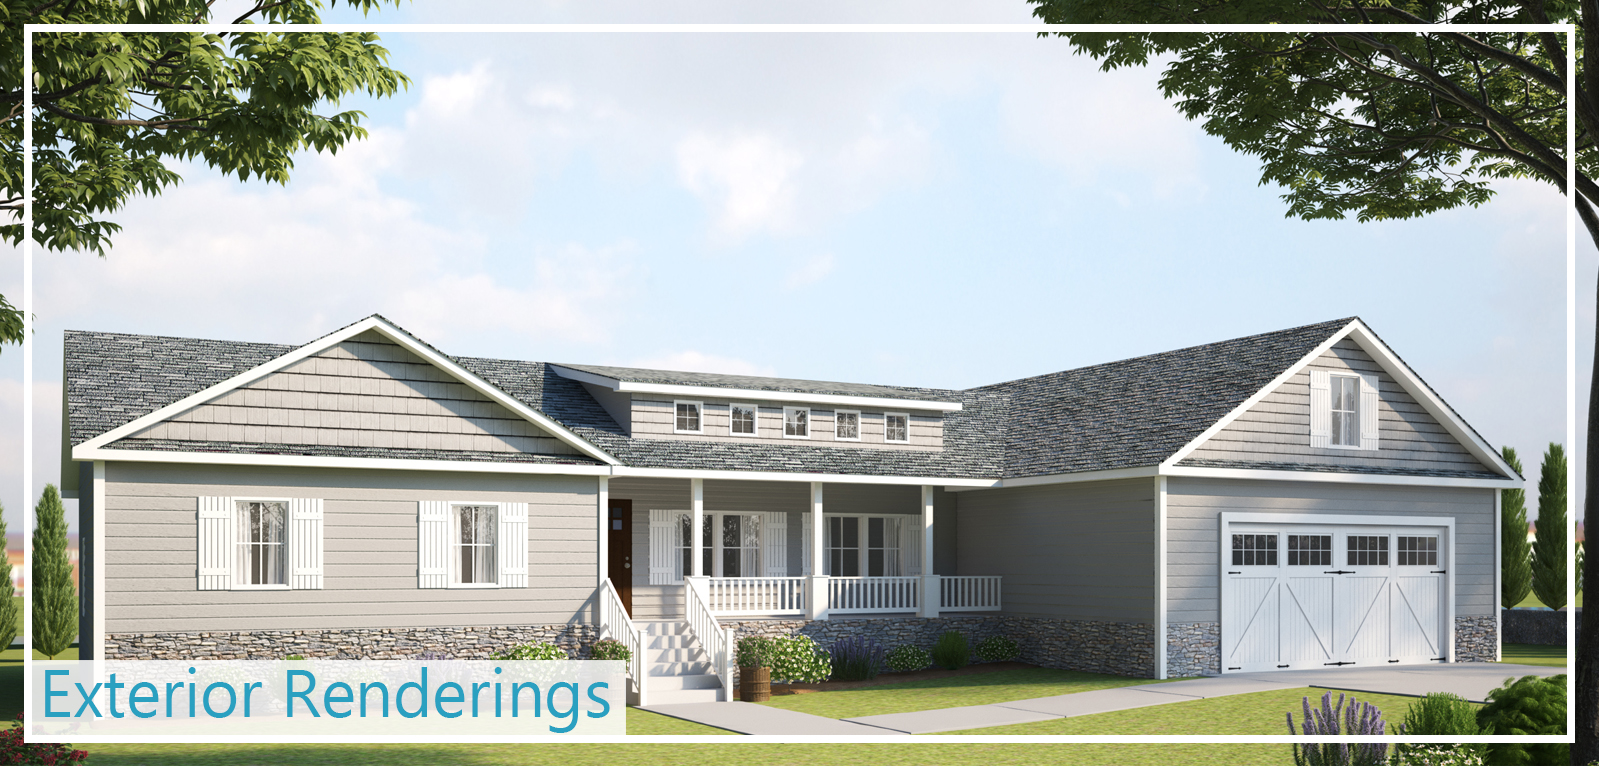 HOME HEADER - Exterior Rendering.jpg